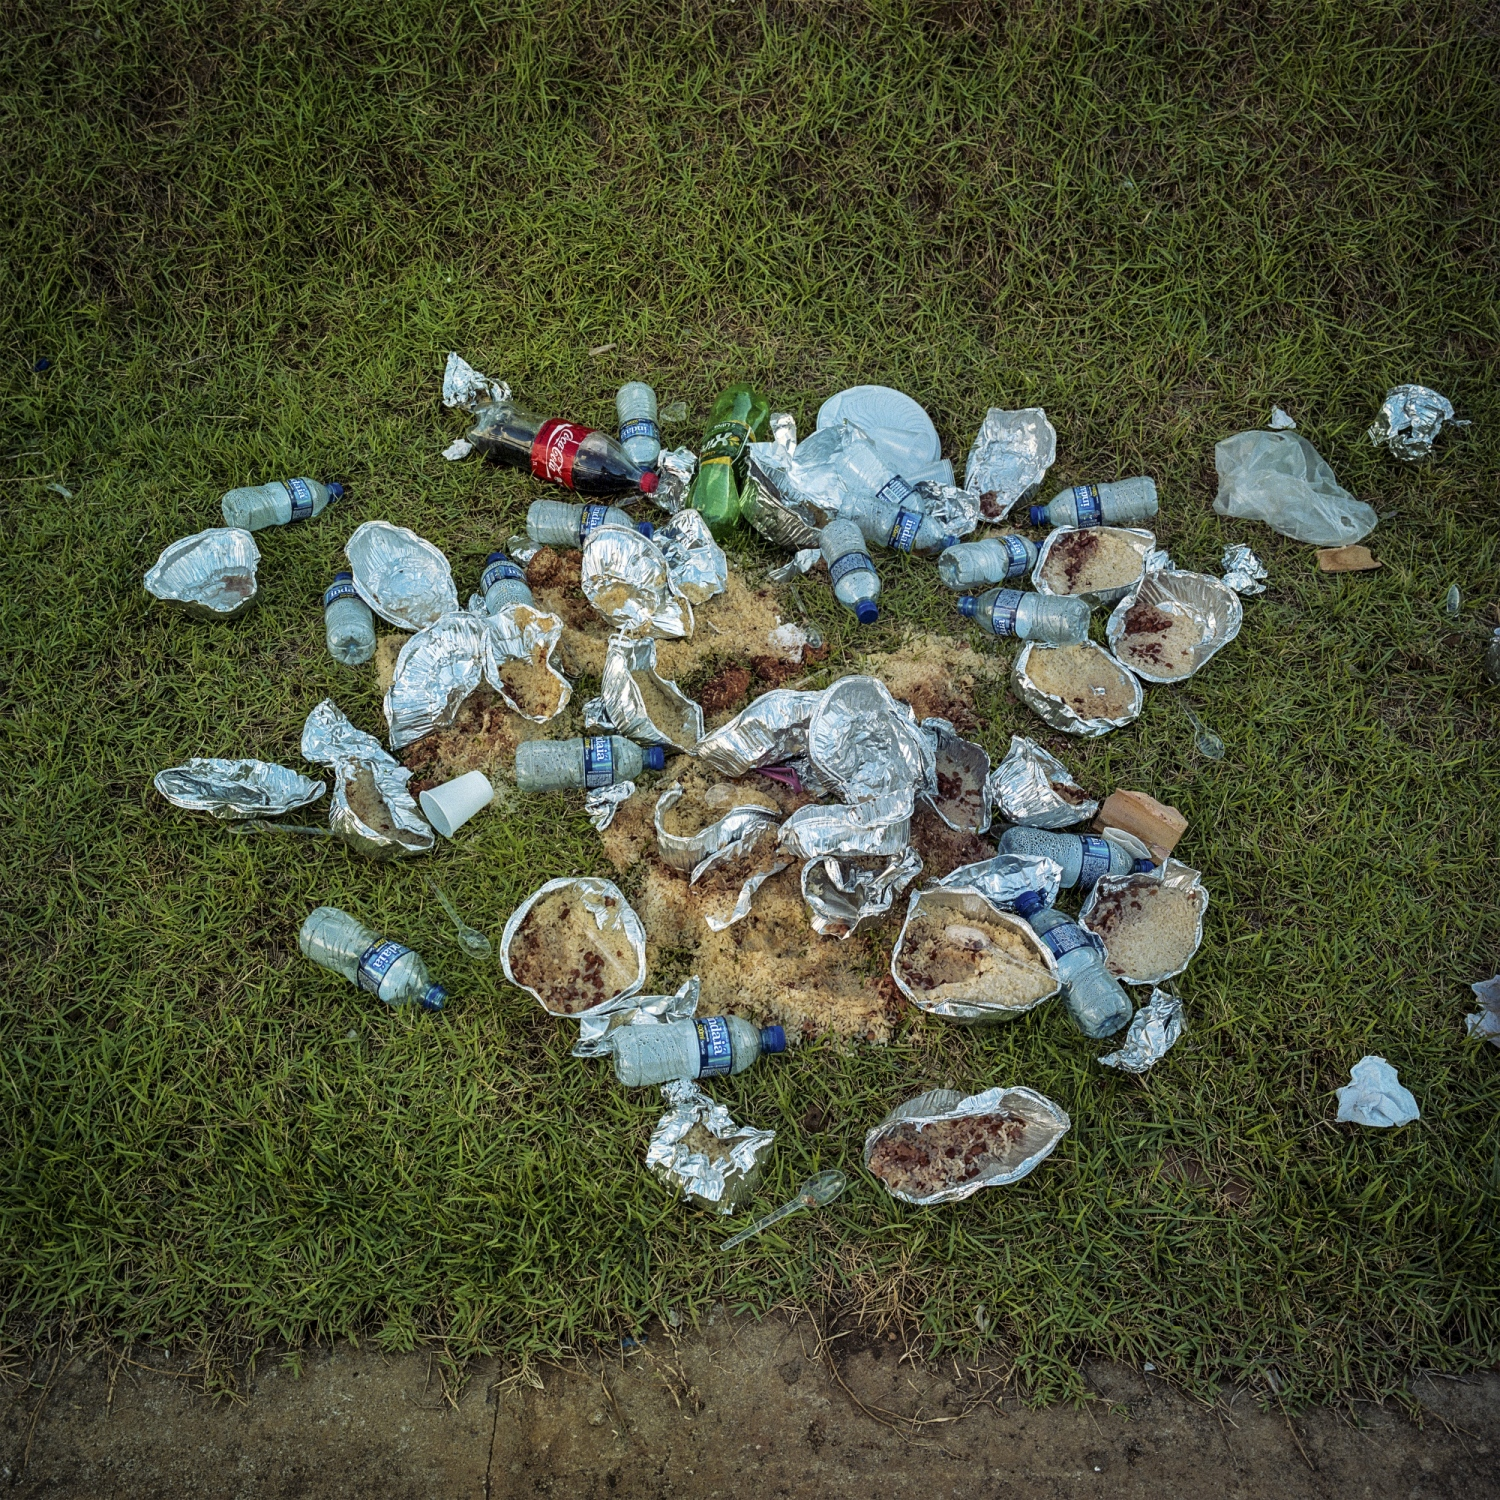 2016. Discarded food contaners after an indigenous occupation of the offices of Norte Energia, the company building the Belo Monte Dam, in the resettlement district of Jatoba in the city of Altamira.  Occupations and protests are a constant part of the indigenous communities fight for compensation and the implementation of promised programs from the company. /Aaron Vincent Elkaim